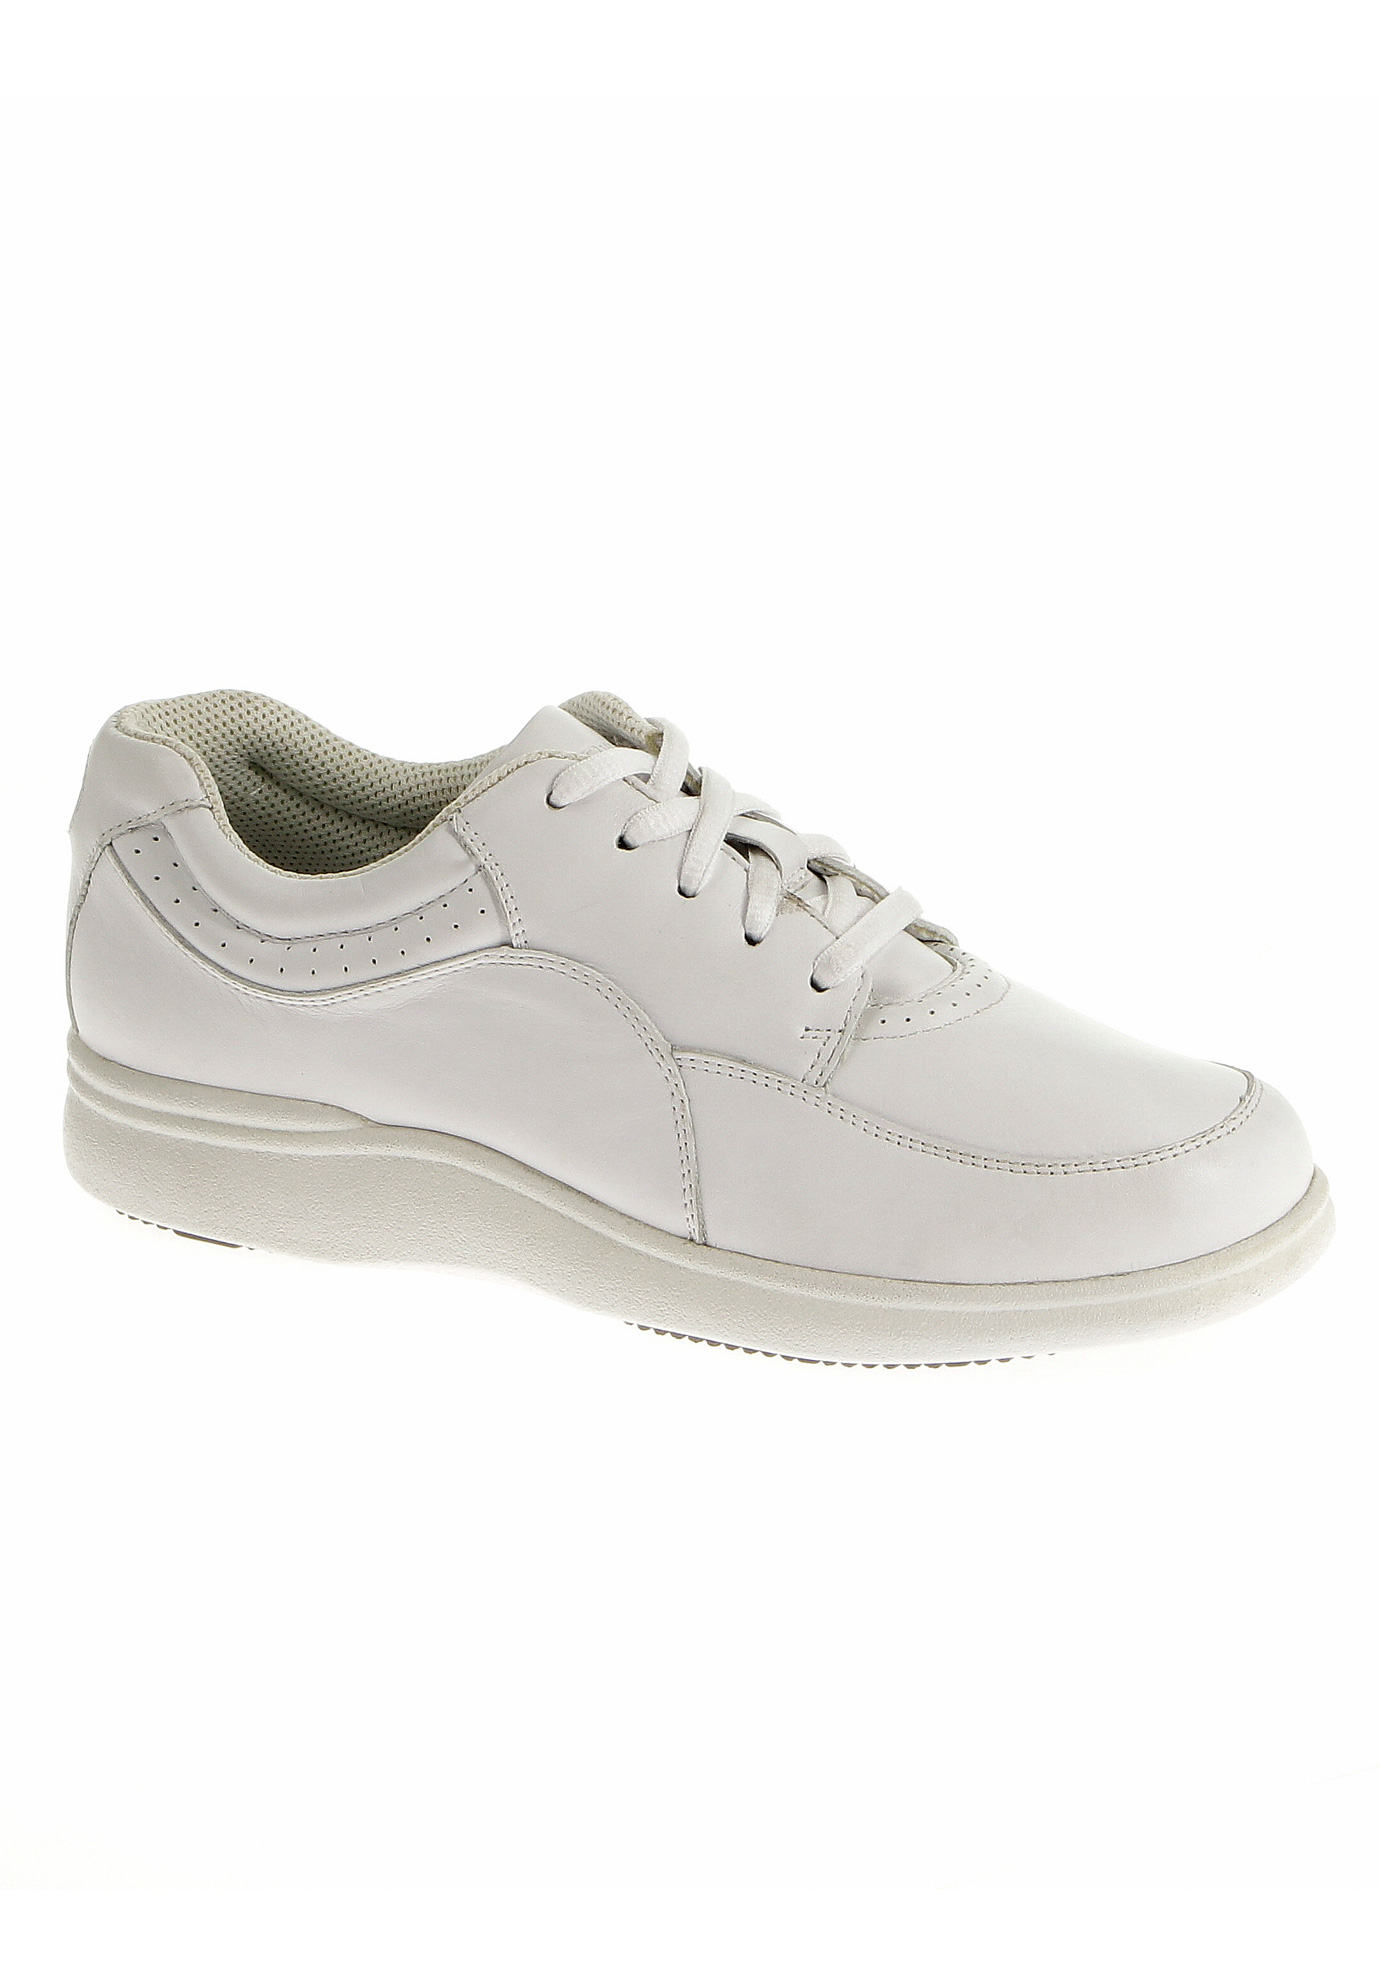 Power Walker Sneaker by Hush Puppies,